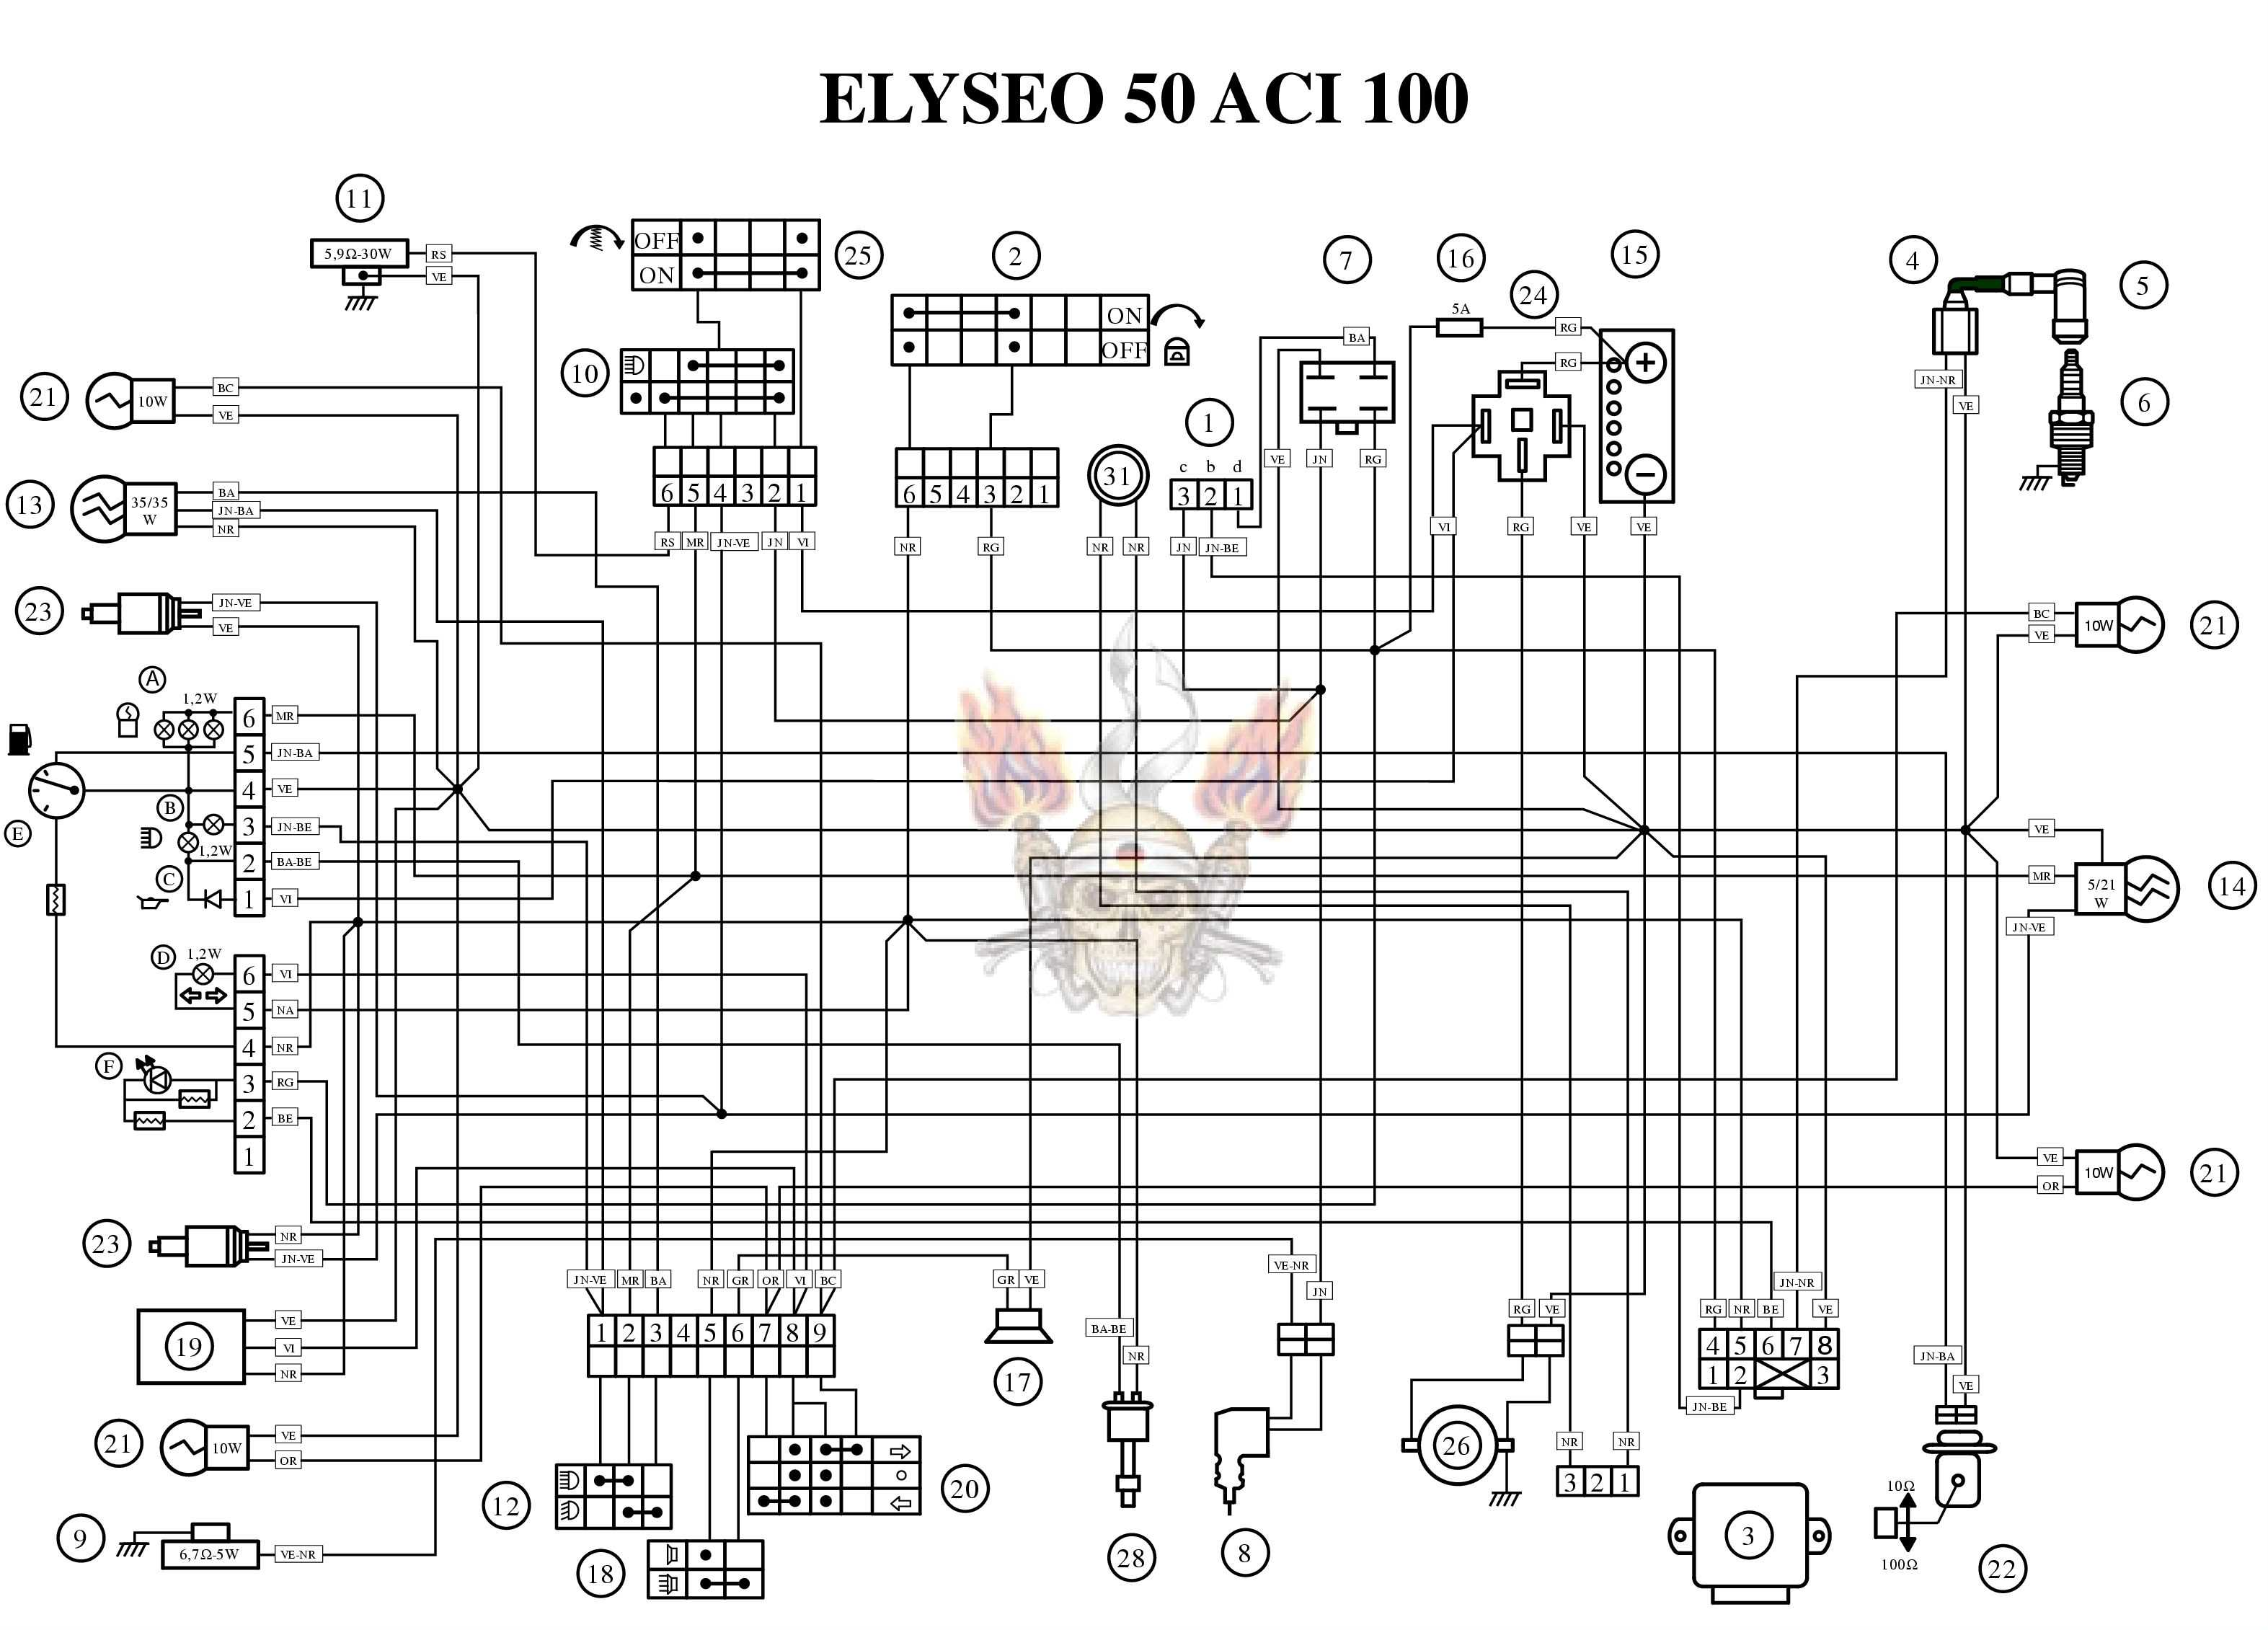 Wiring Diagram Peugeot ELYSEO 50 ACI 100 peugeot 307 wiring diagram efcaviation com peugeot 307 abs wiring diagram at creativeand.co